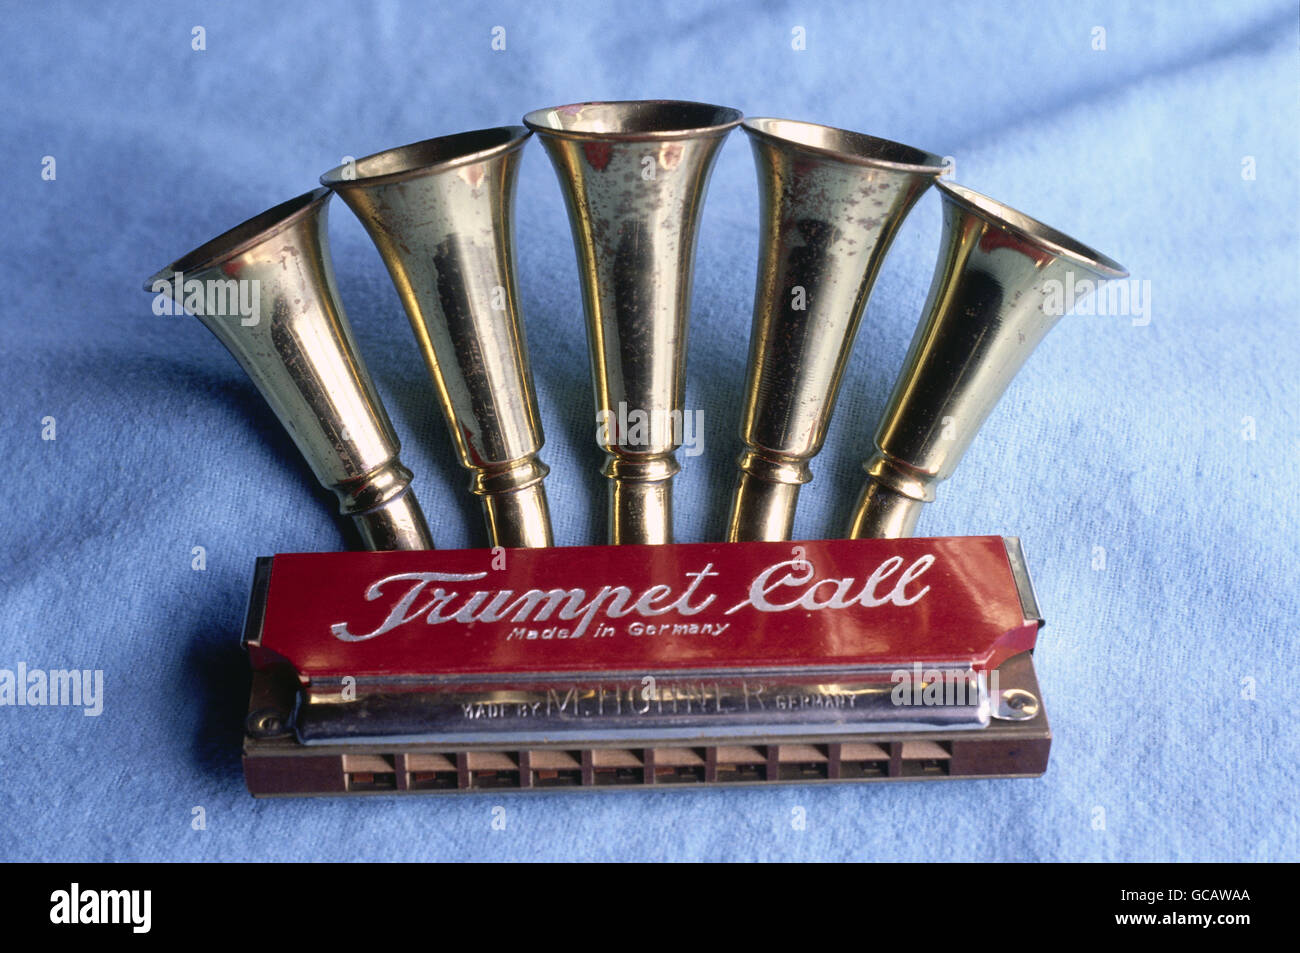 Historical harmonica 'Trumpet call' by Hohner - Stock Image